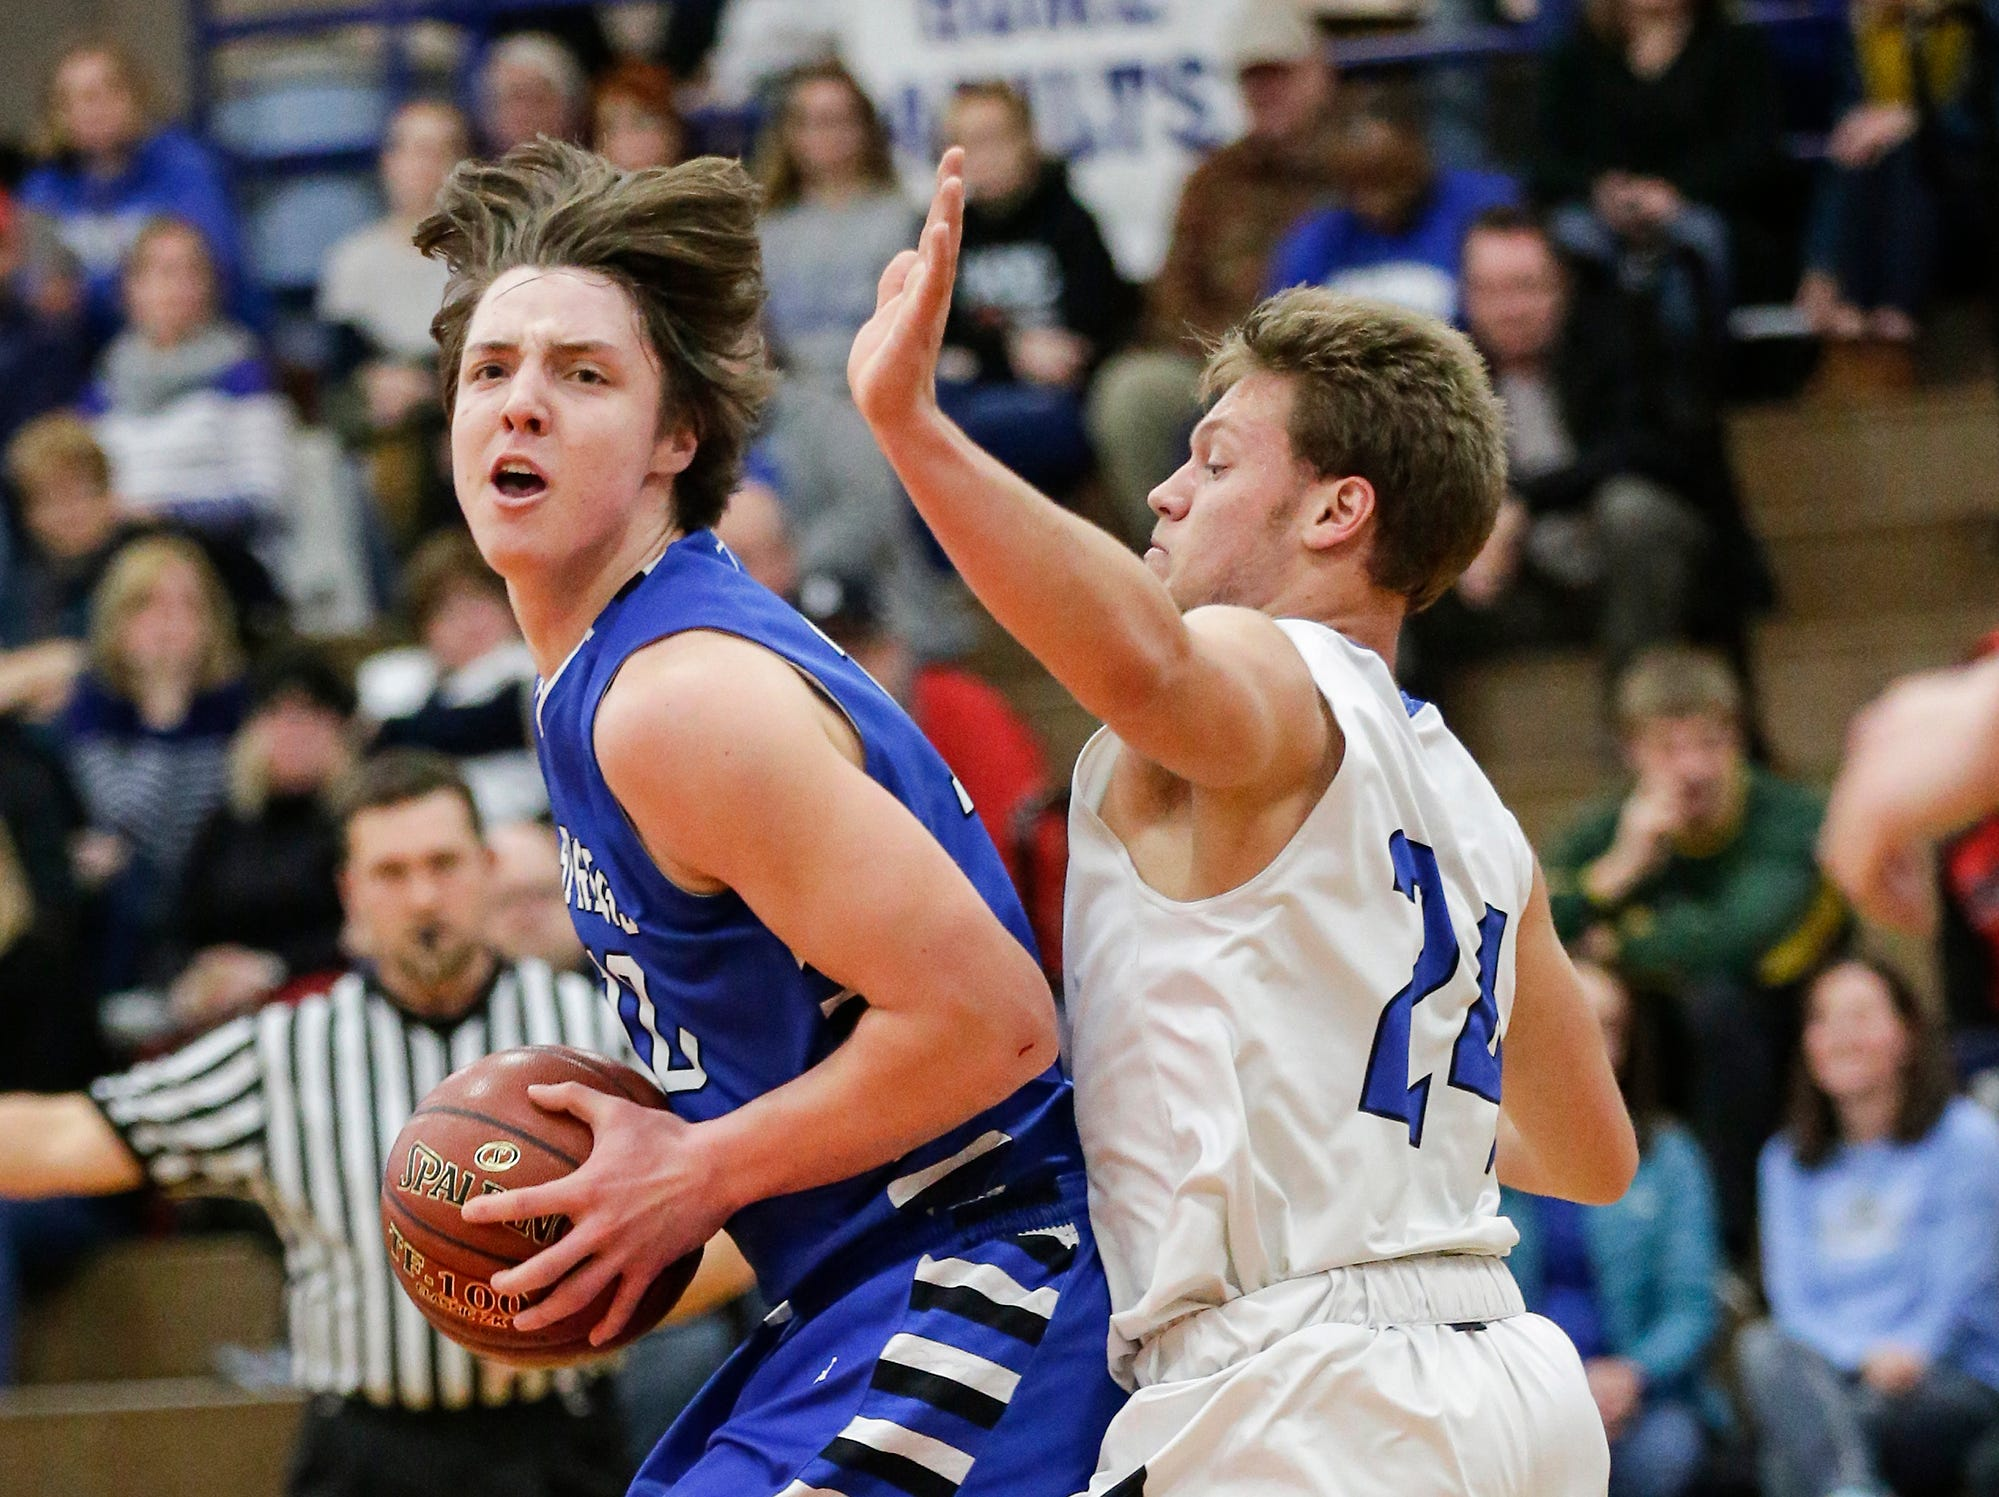 St. Mary's Spring Academy boys basketball's Cade Christensen tries to get around  Winnebago Lutheran Academy's Gideon Wenig Tuesday, January 8, 2019 during their game in Fond du Lac. Winnebago Lutheran Academy won the game 69-66. Doug Raflik/USA TODAY NETWORK-Wisconsin